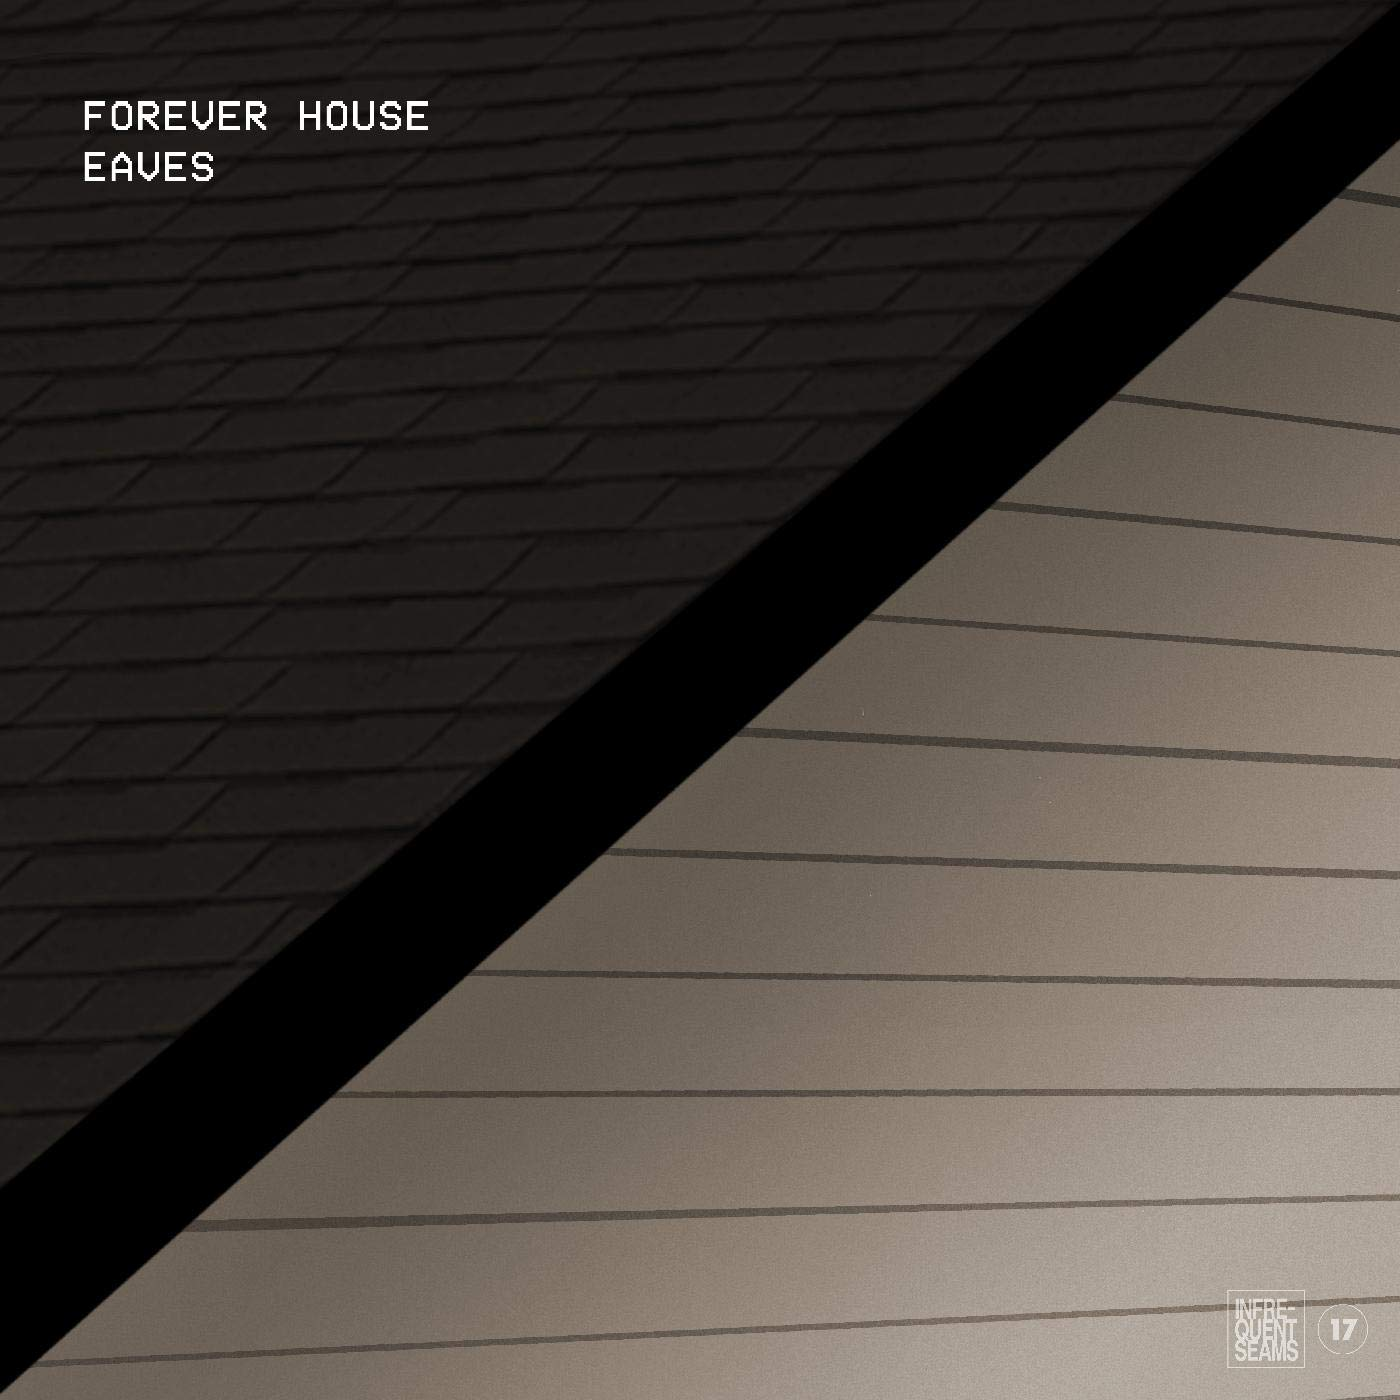 Cassette : Forever House - Eaves (Digital Download Card)